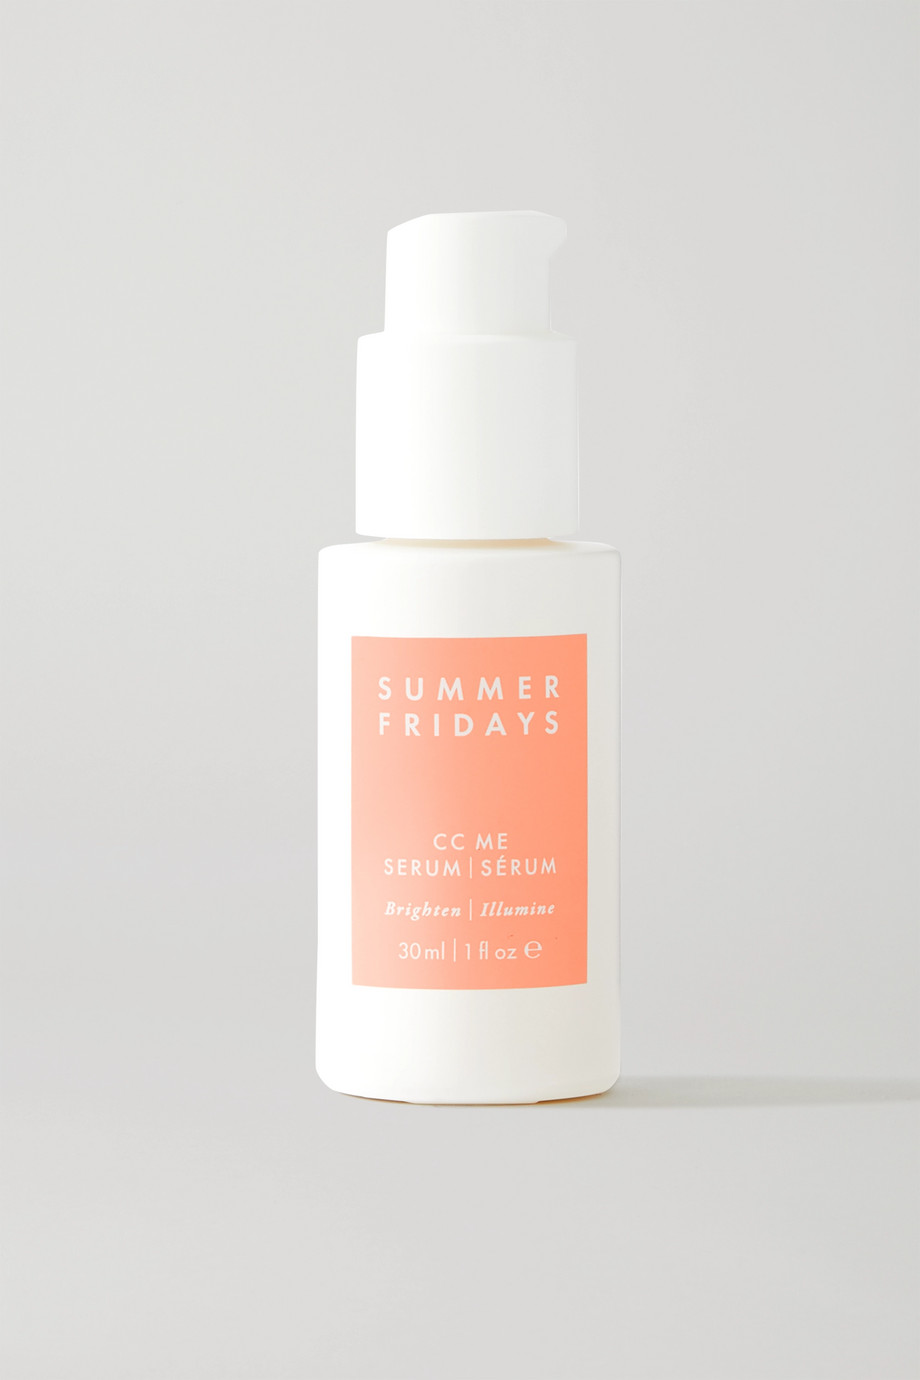 Summer Fridays CC Me Serum, 30ml